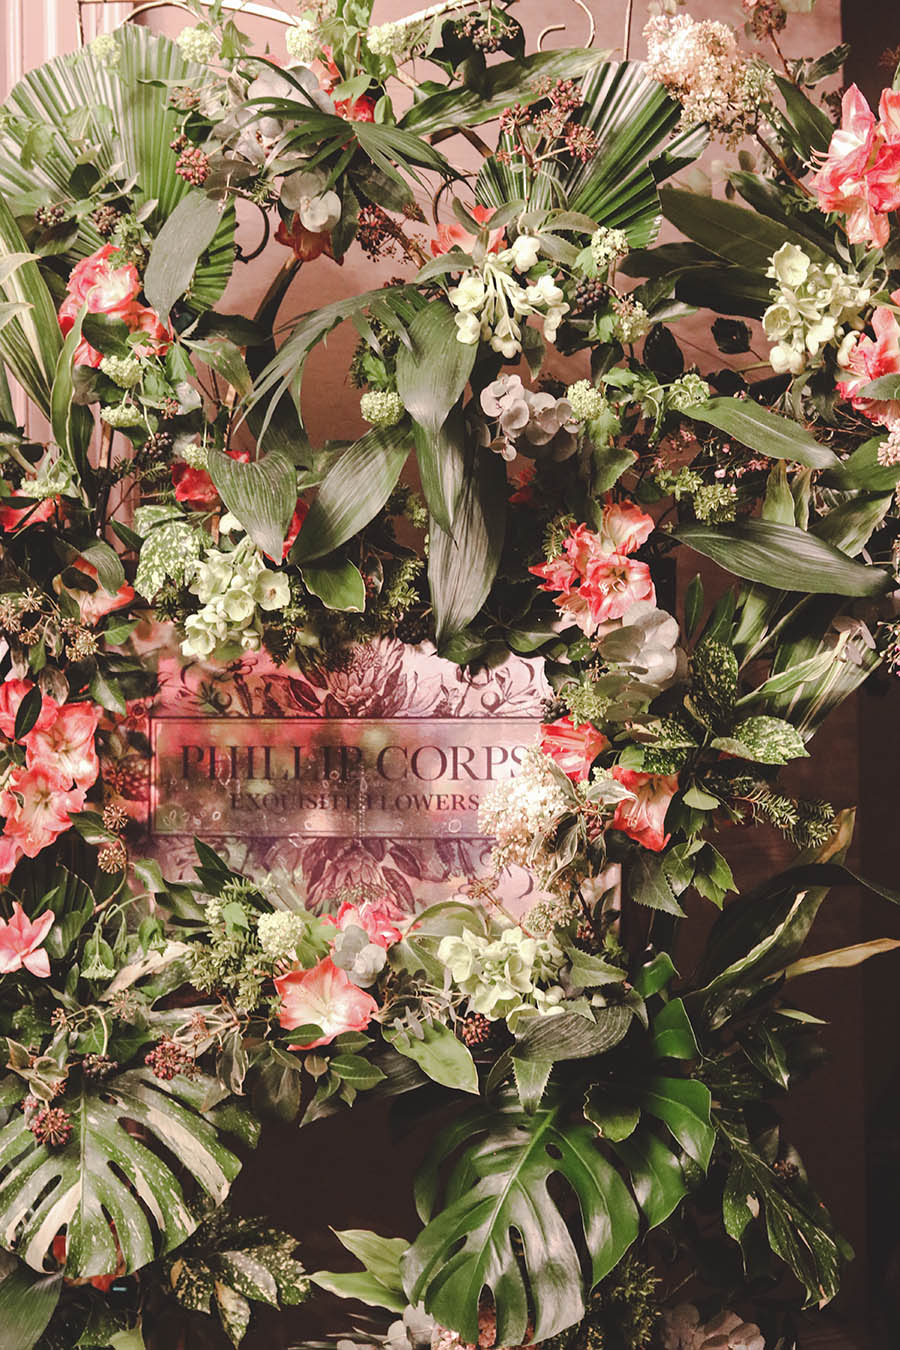 Bridelux Atelier London 2018 Phillip Corps Flowers